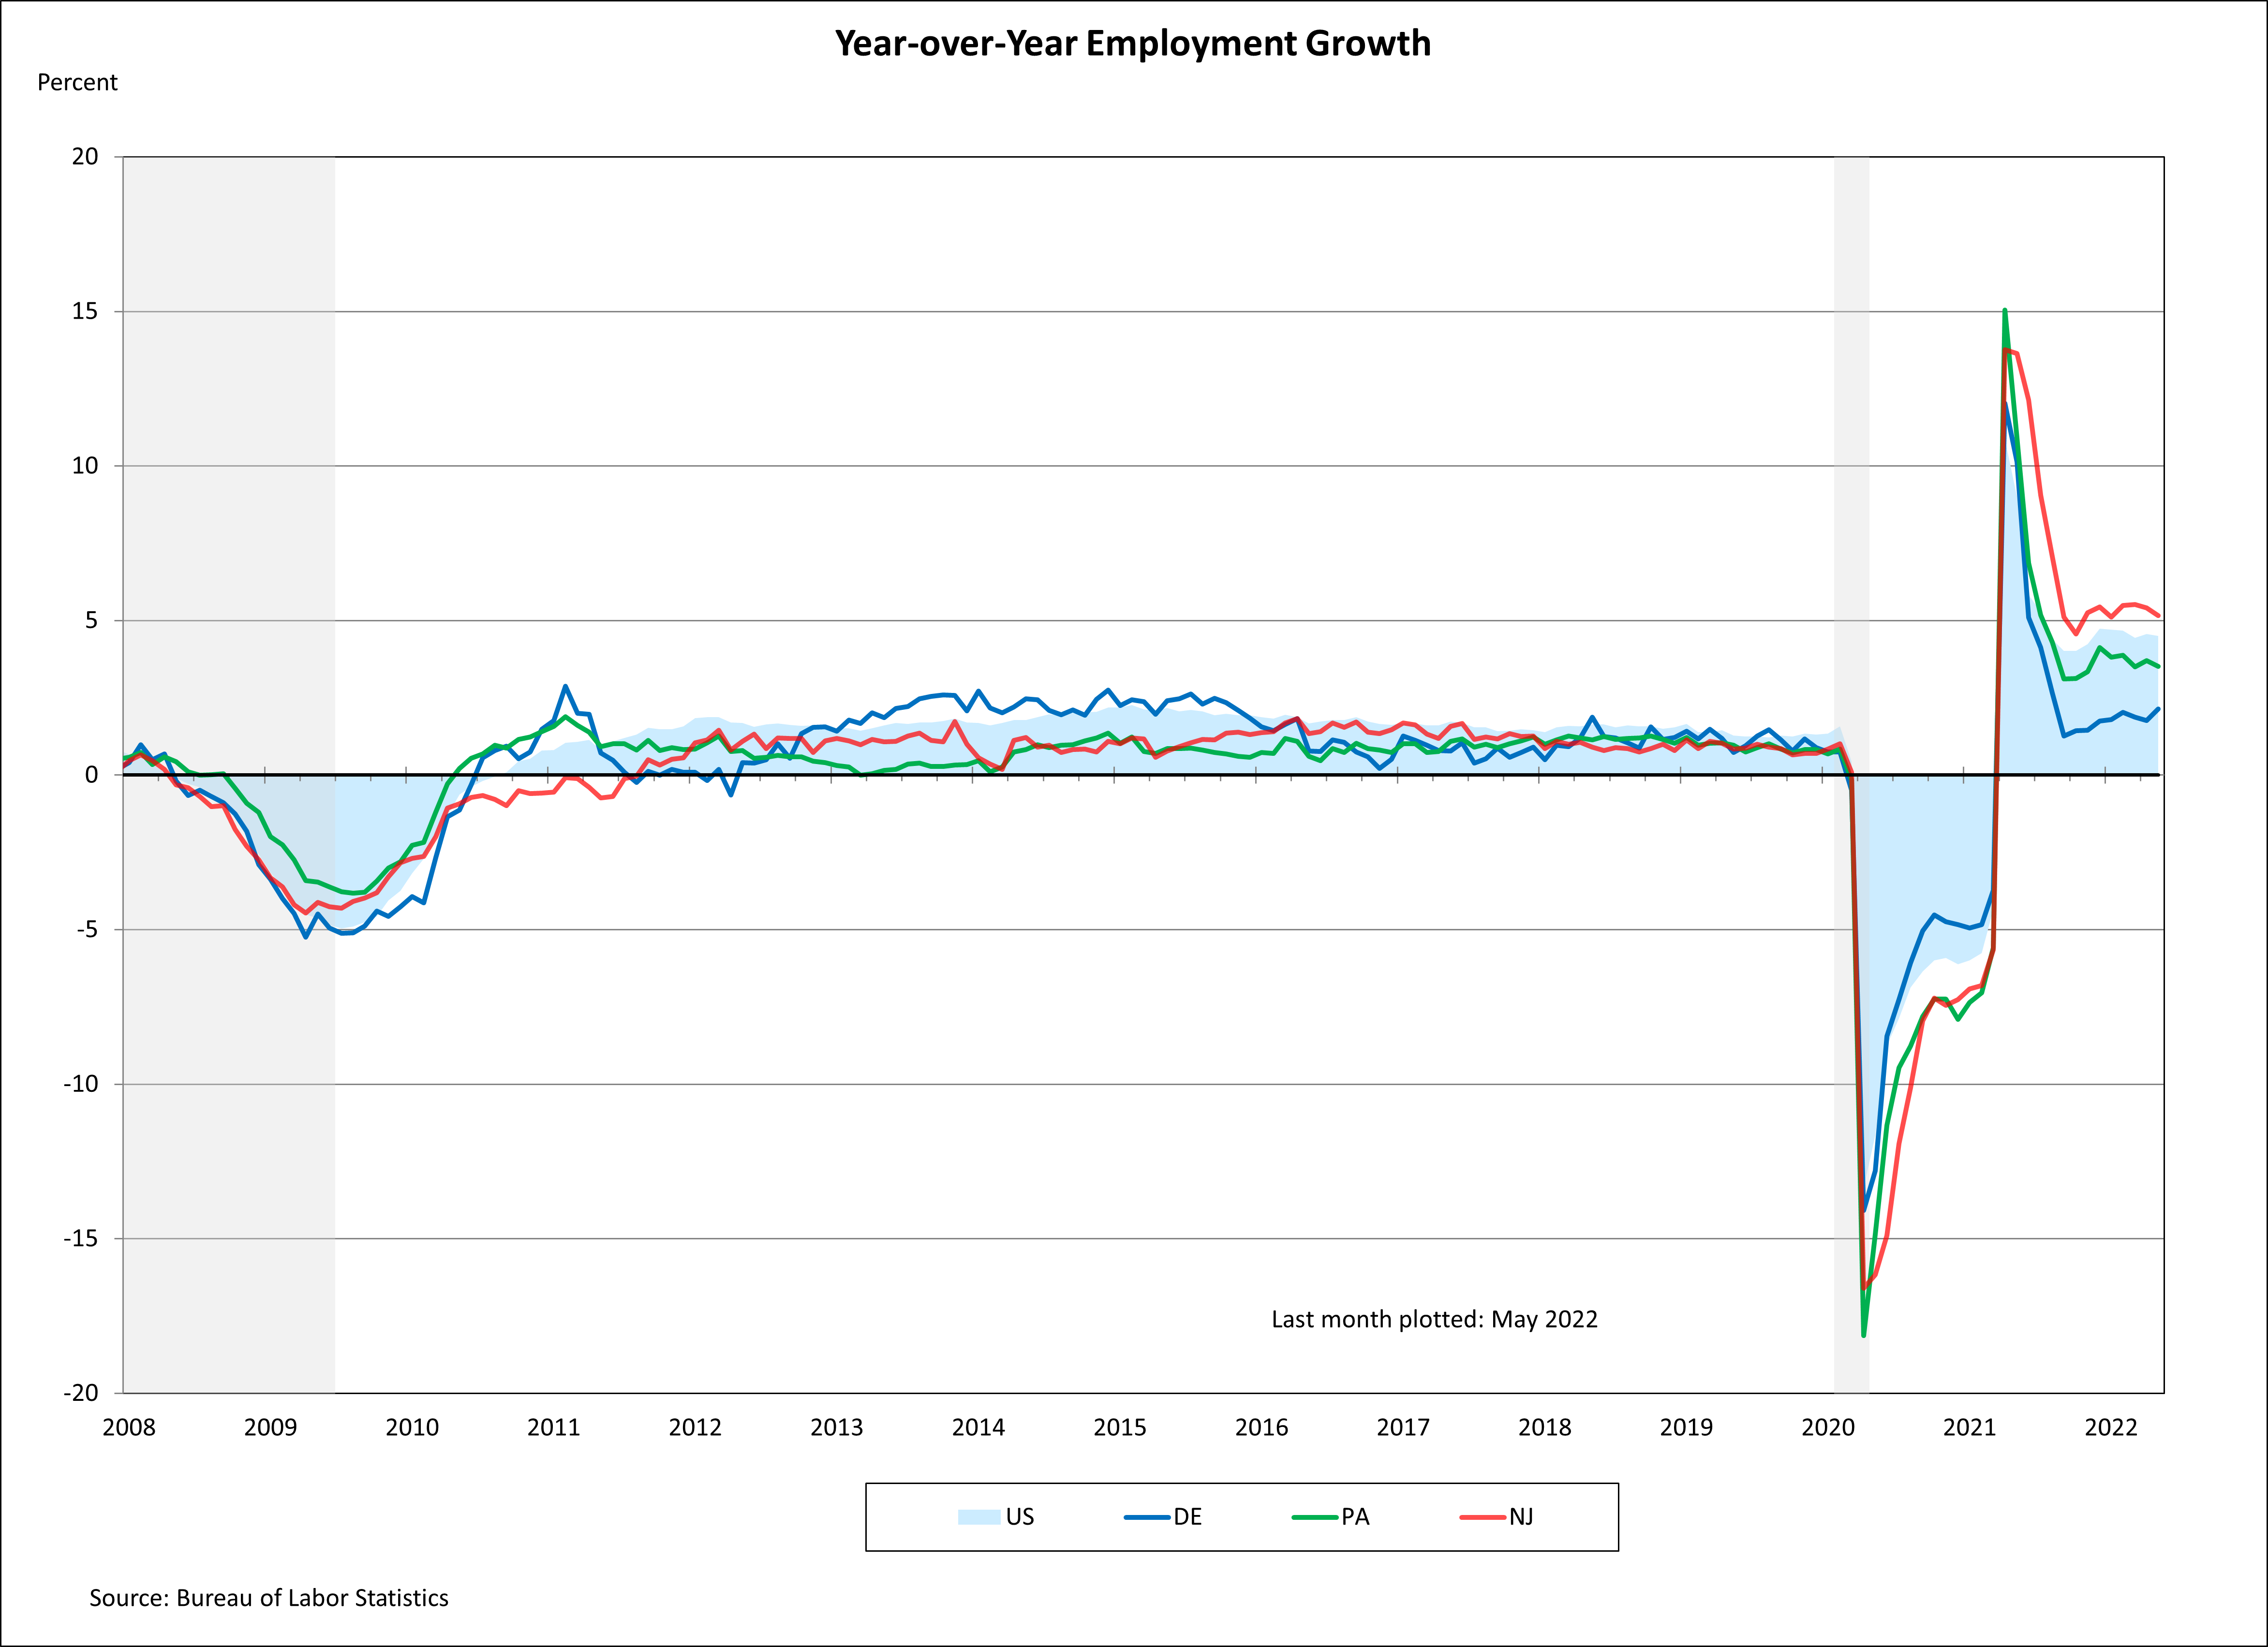 Line chart showing Year-over Year Employment Growth